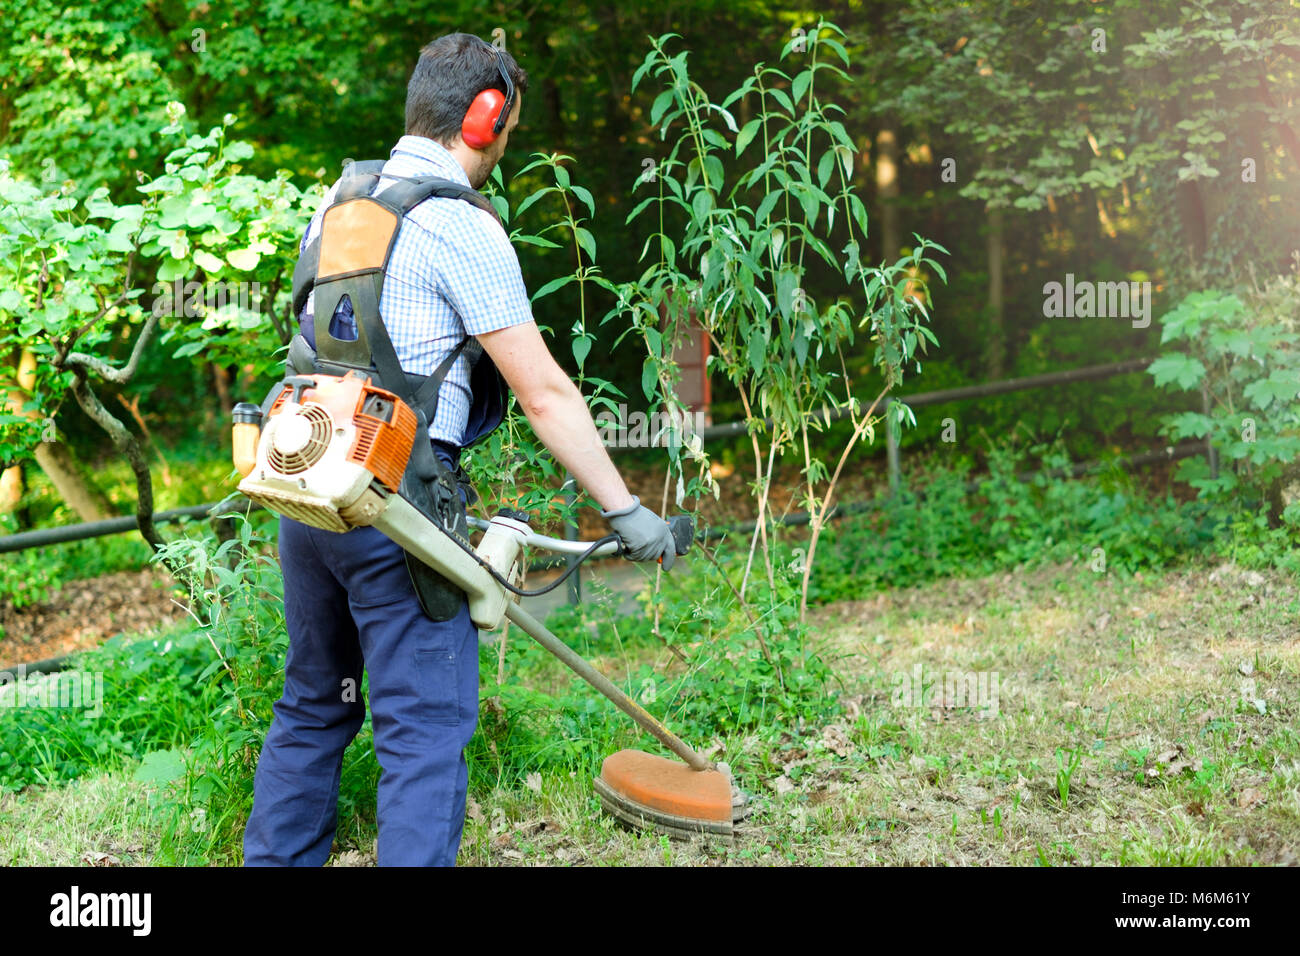 Professional gardener using an edge trimmer in the home garden - Stock Image